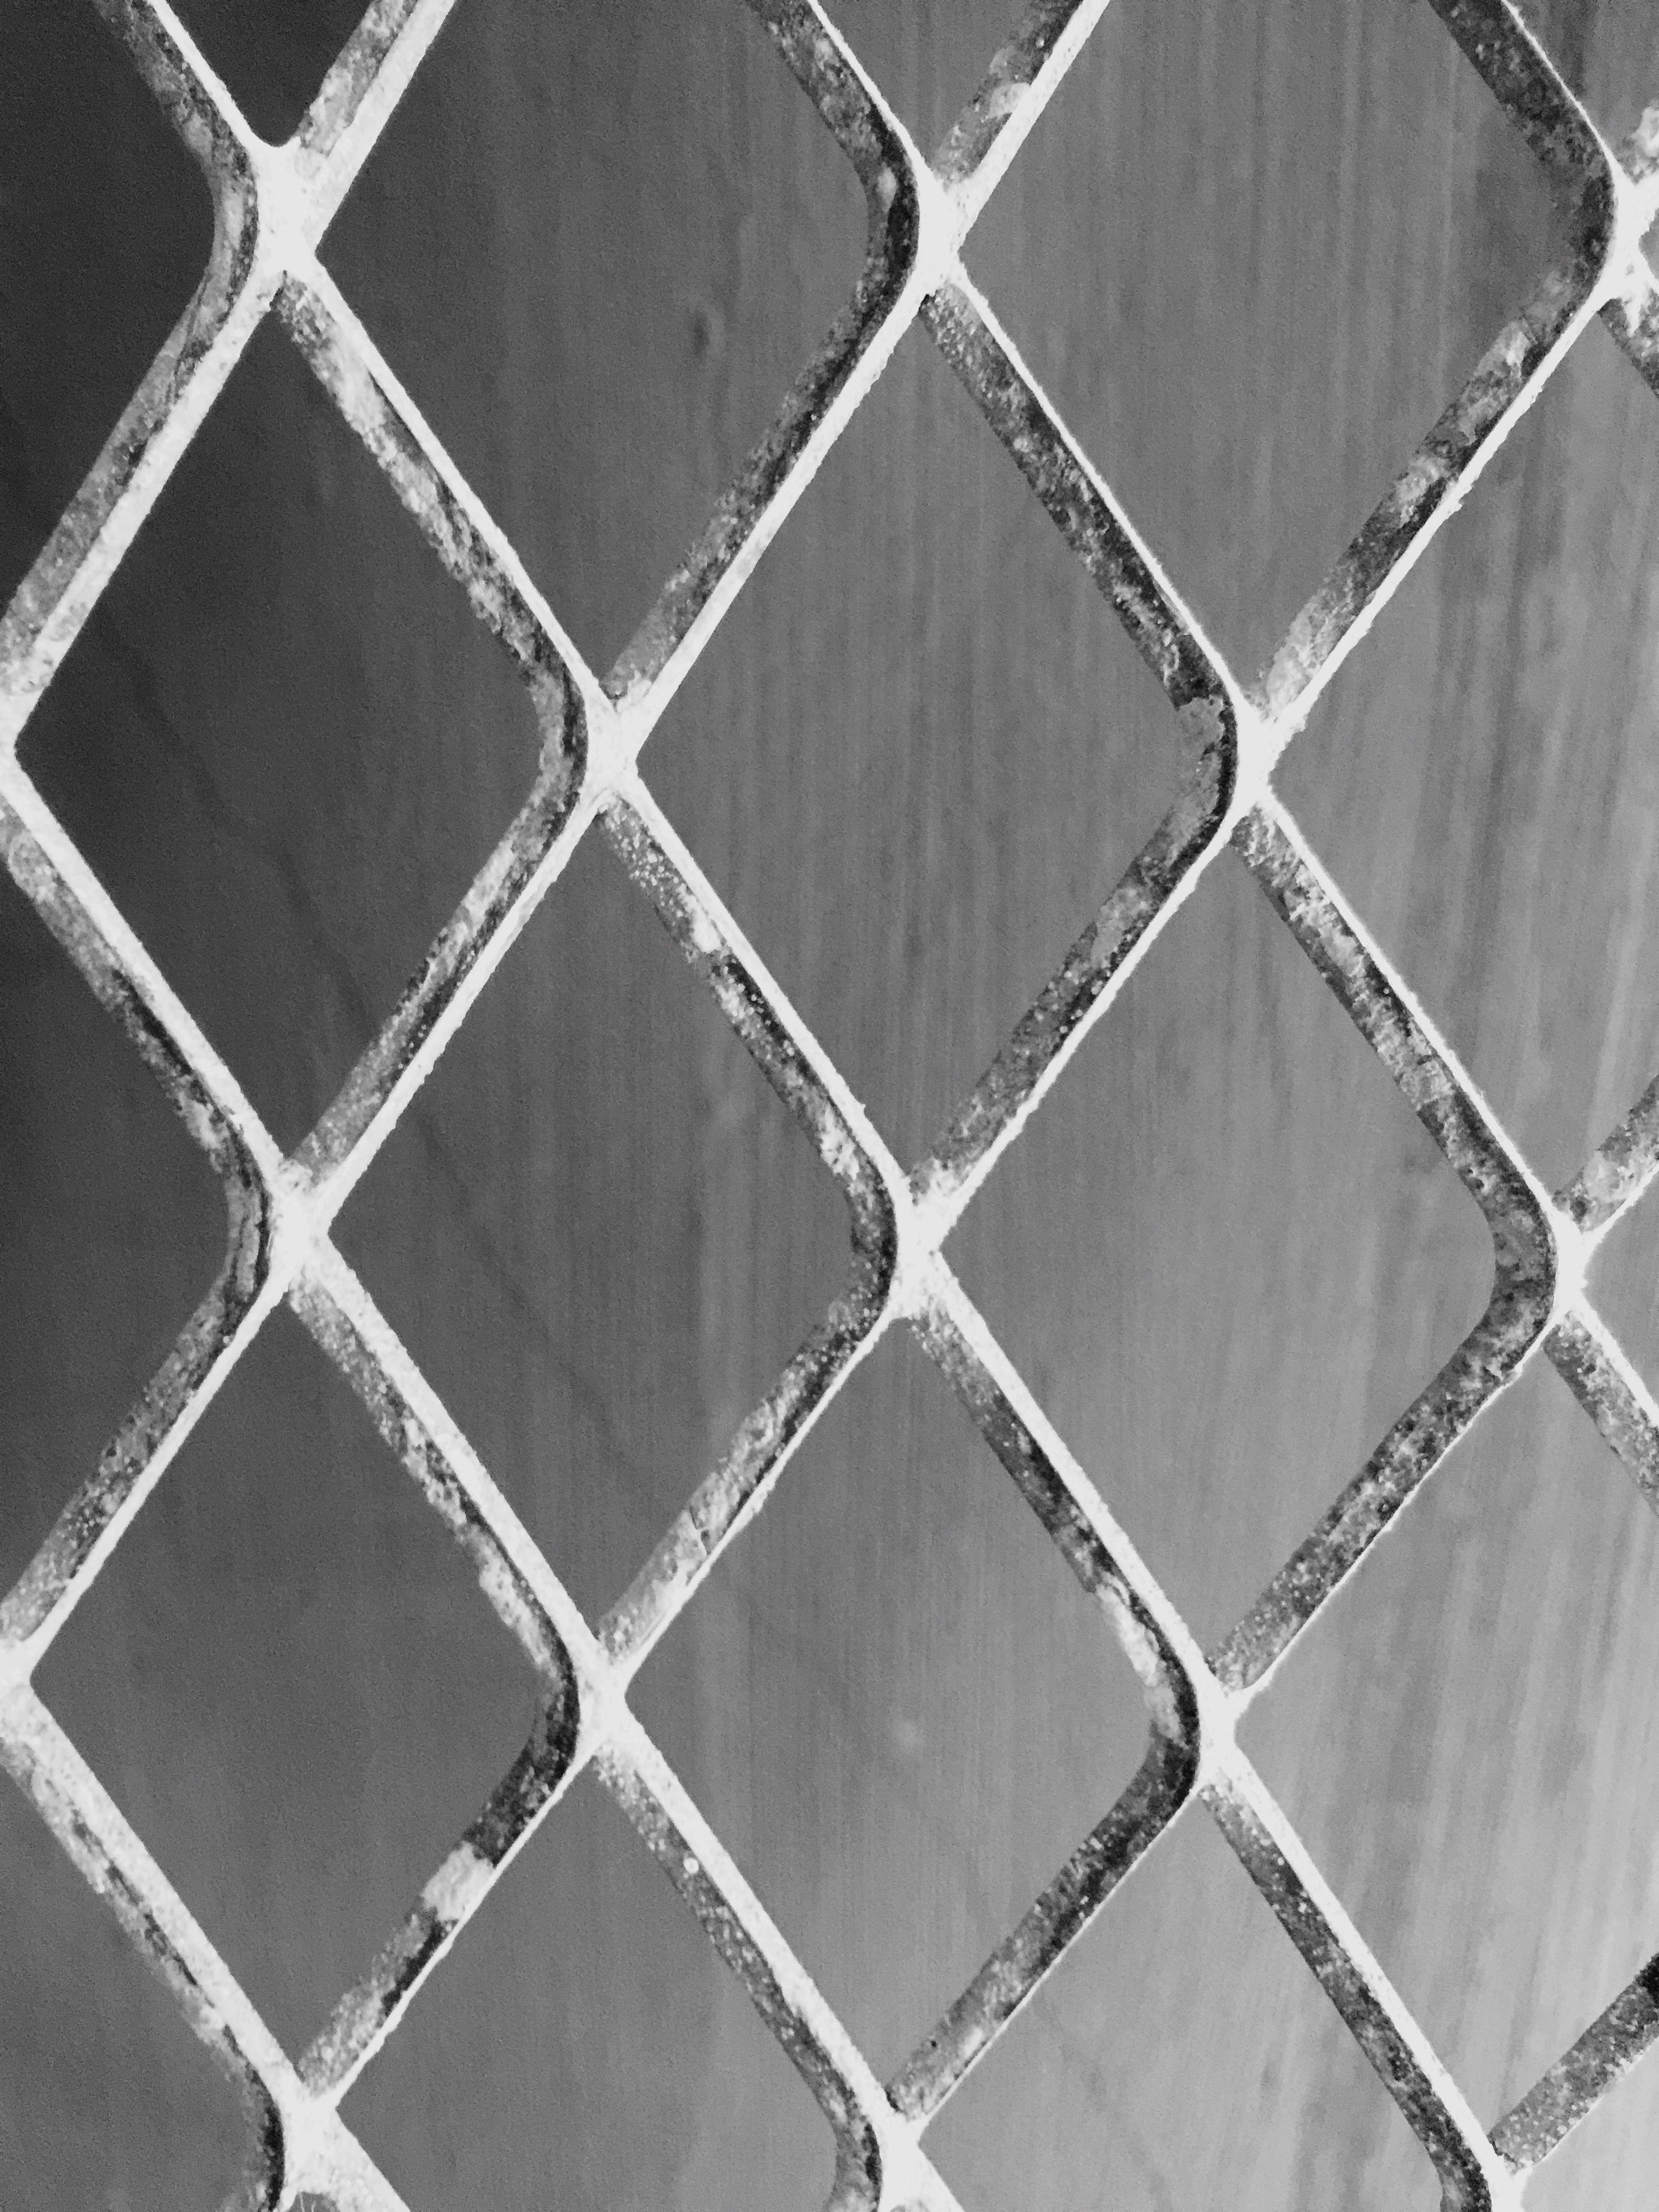 full frame, backgrounds, pattern, chainlink fence, protection, textured, close-up, metal, safety, design, geometric shape, detail, fence, no people, indoors, security, built structure, repetition, day, metal grate